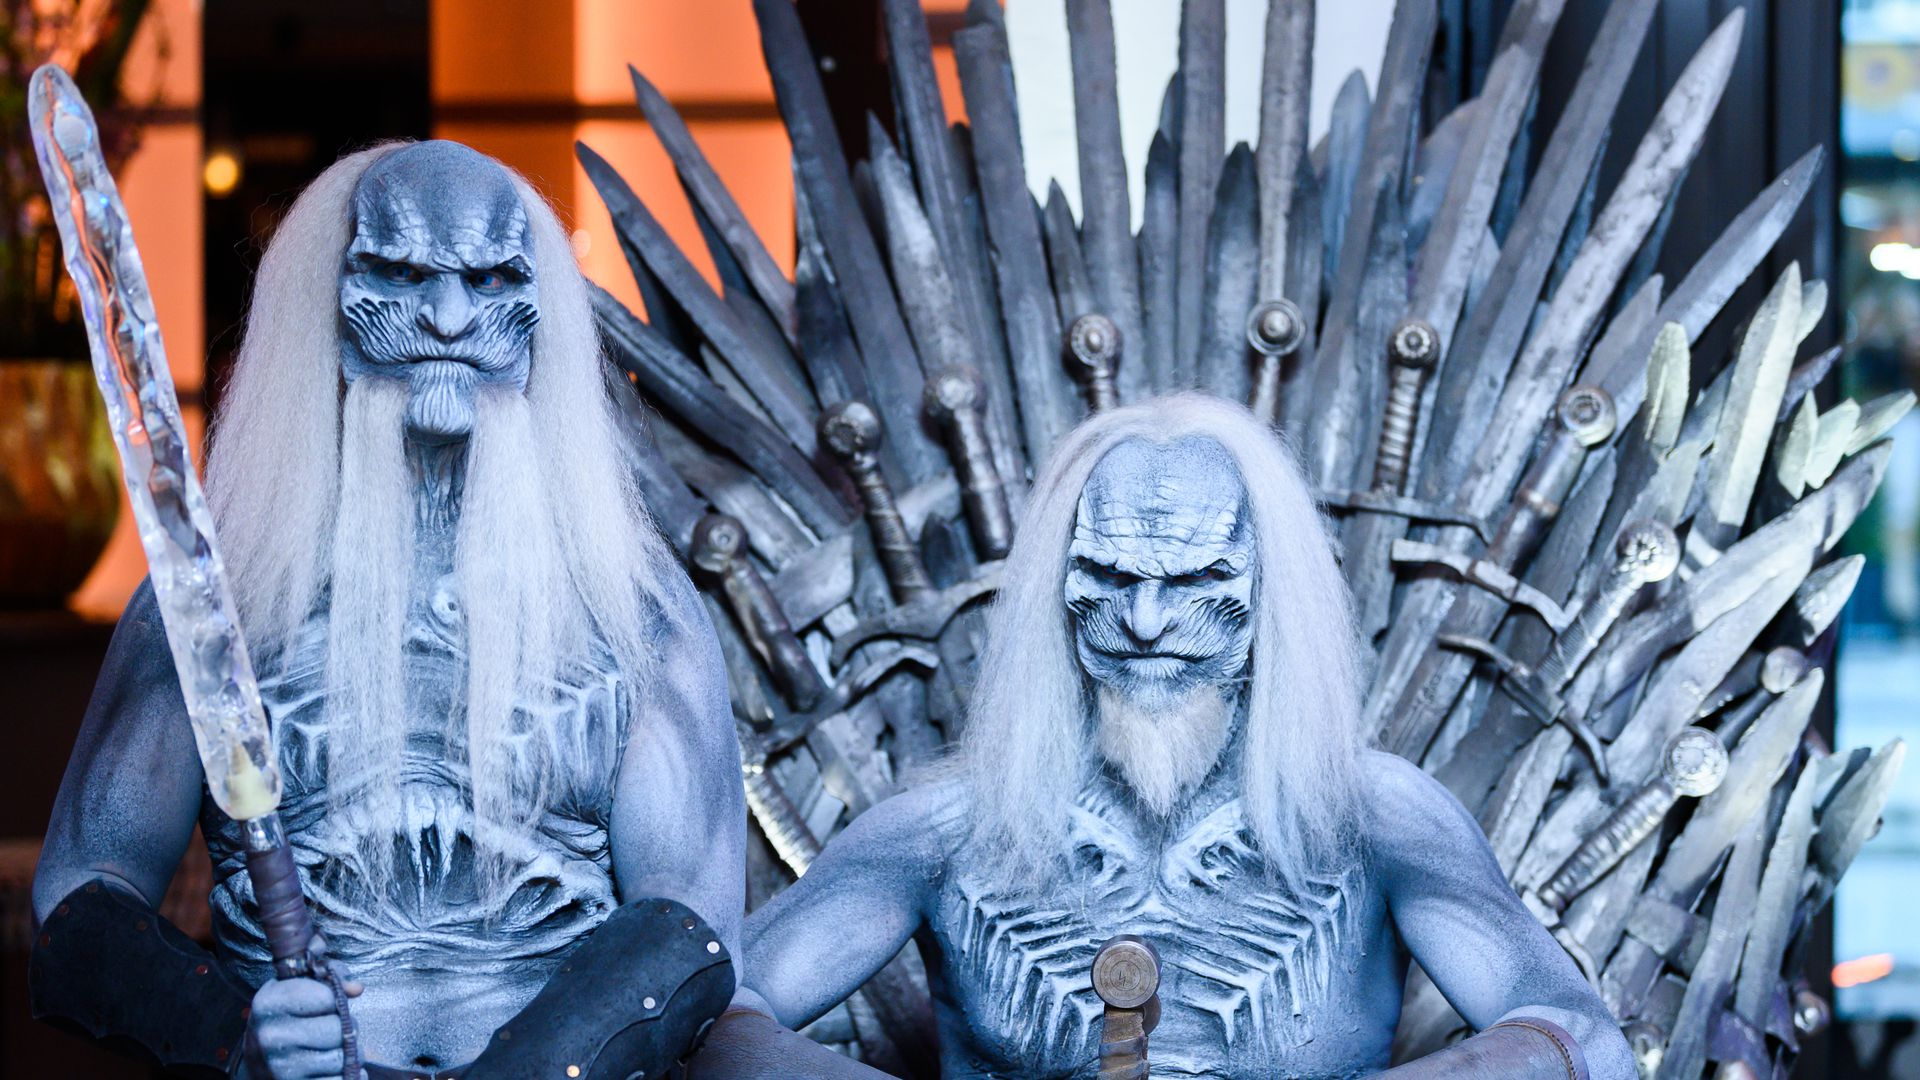 Whitewalkers from game of thrones